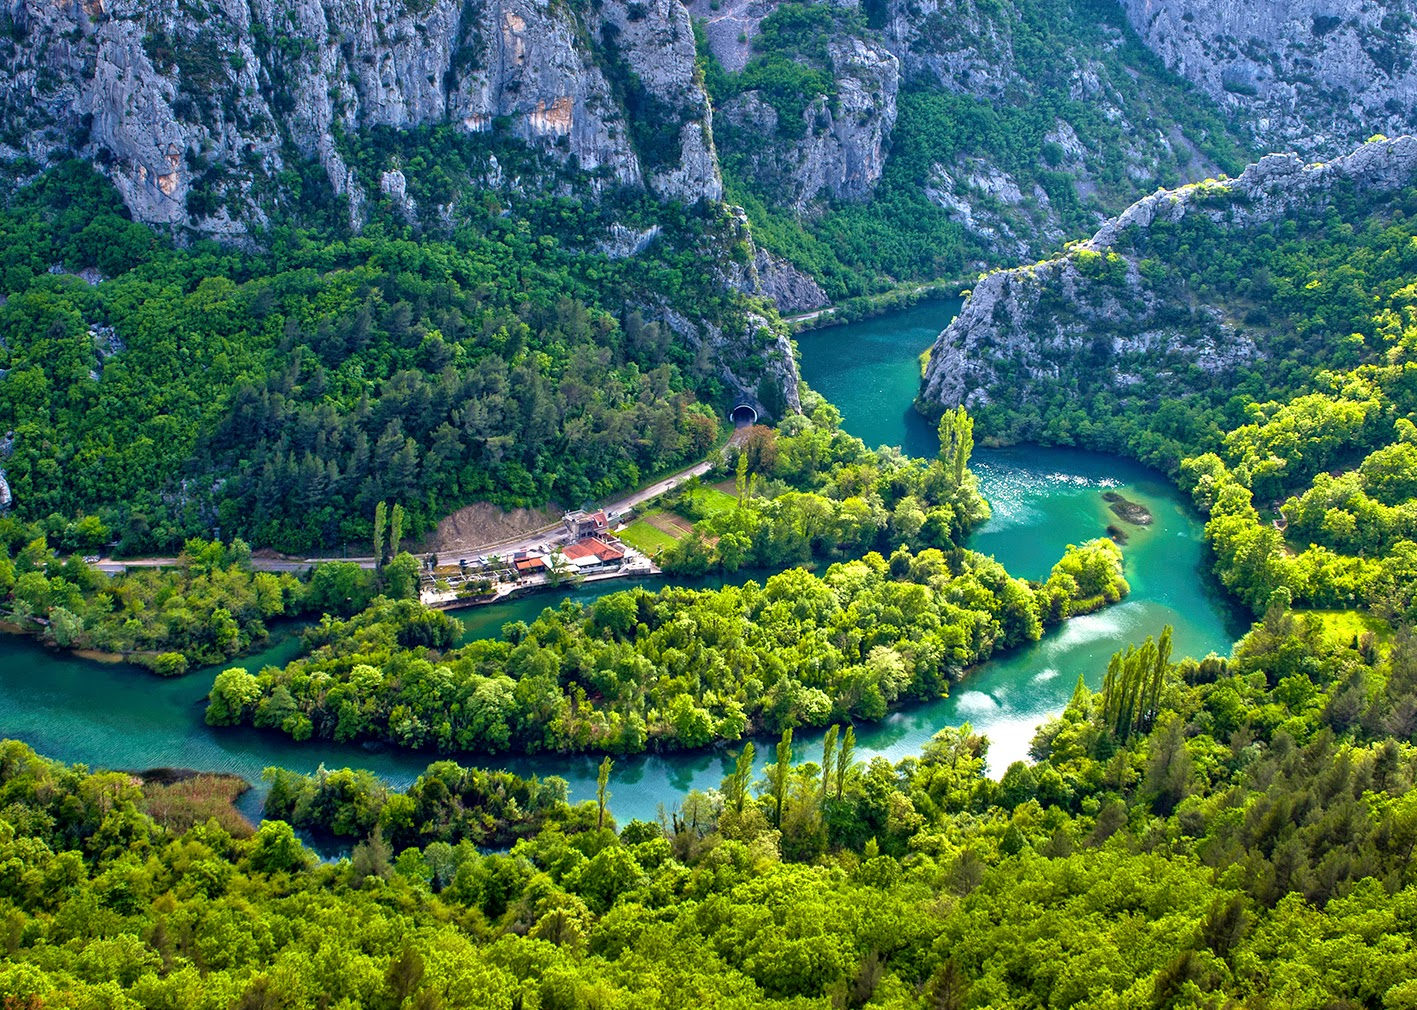 Why Croatia? Here are 10 Very Good Reasons Why!